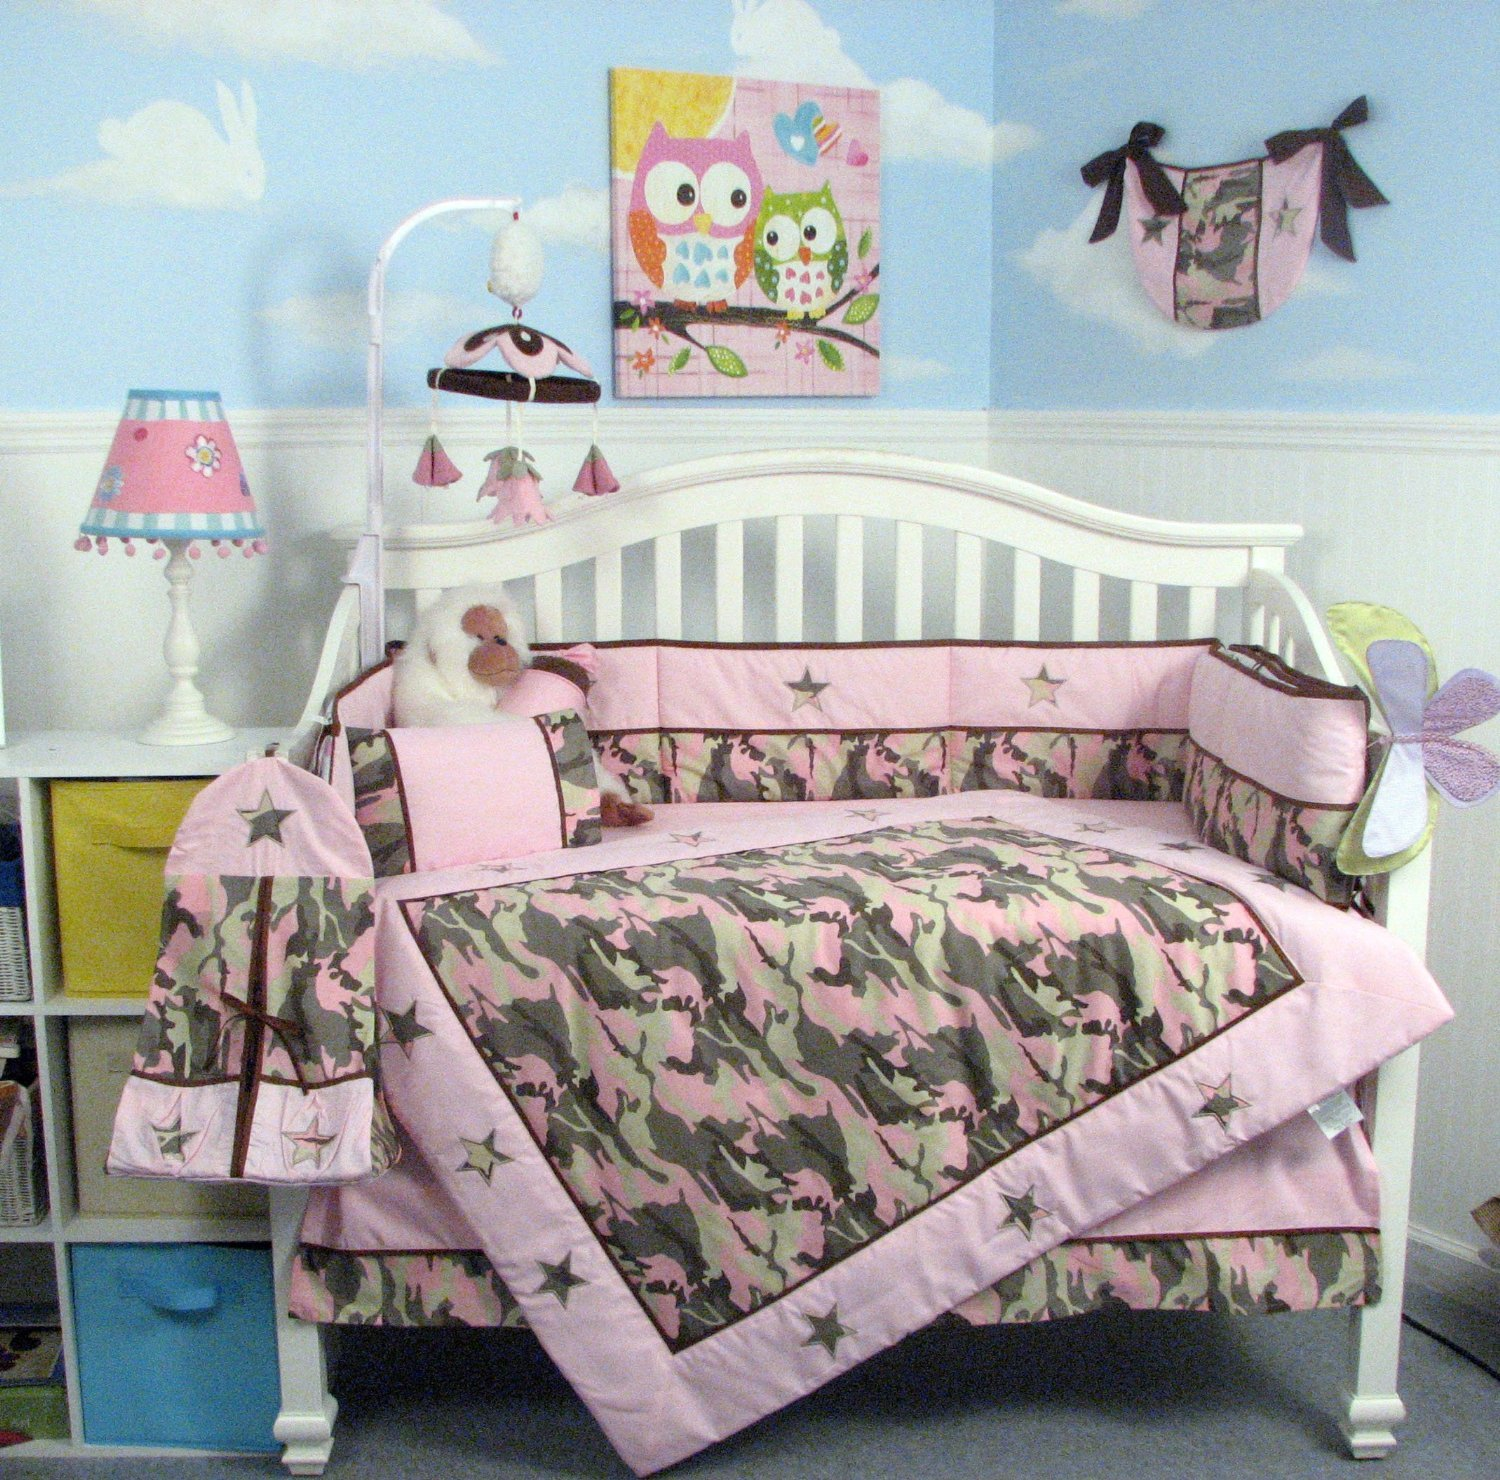 sets bedding bedroom unique how sheets with navy beautiful set and choose nursery anchor infant blanket owl full girl bed cute for use gray quilt baby pink chic cot girls modern purple nautical size to crib cream of princess your bumper